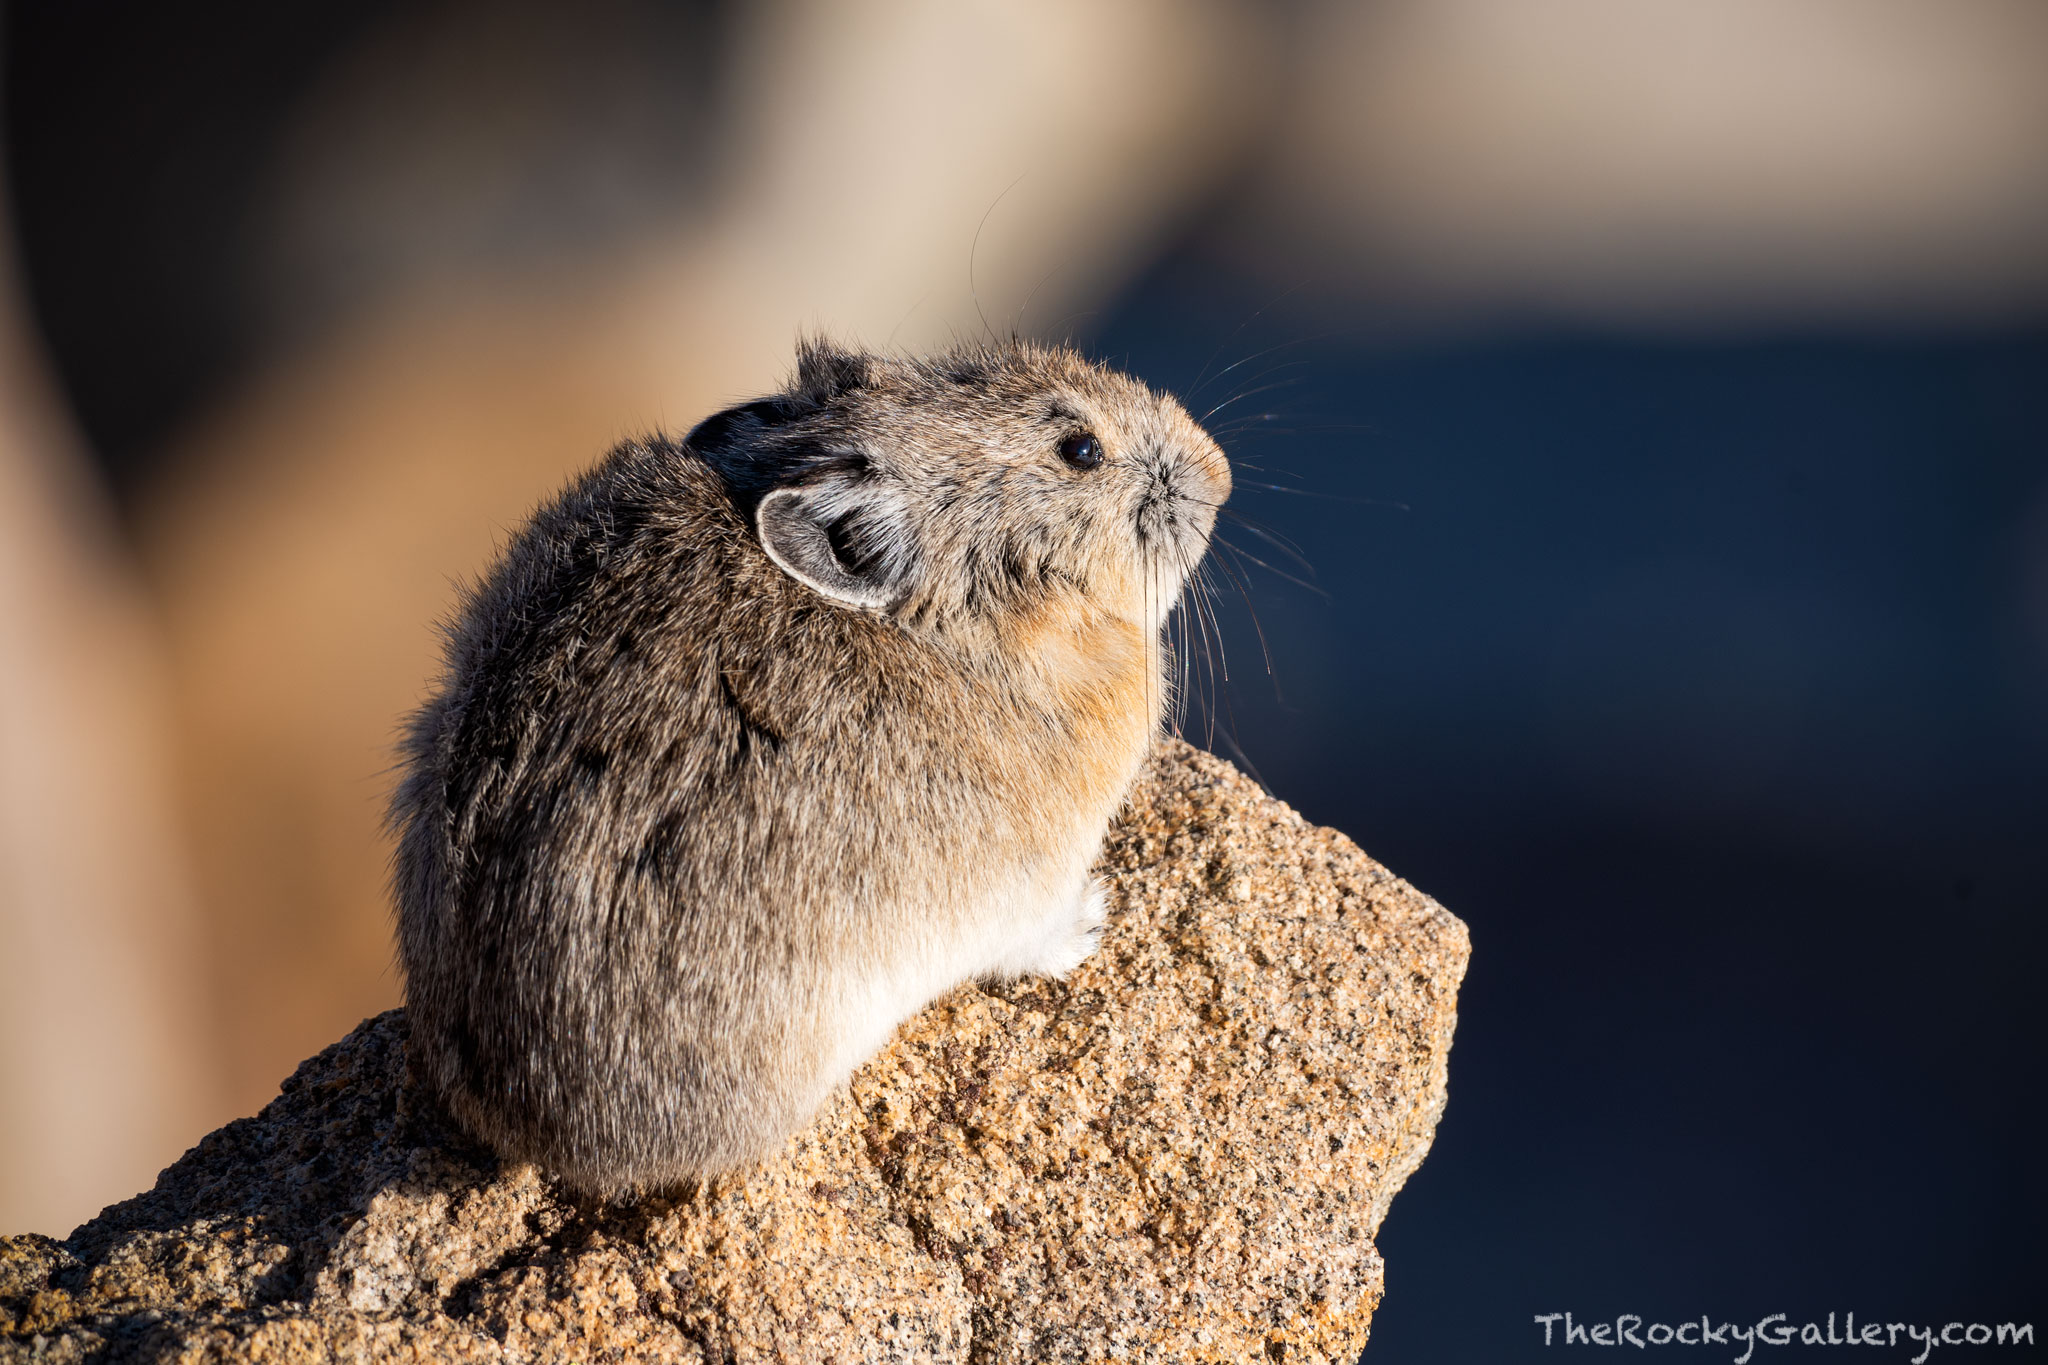 A Pika observes his surrounding high above treeline near Trail Ridge Road on a spring morning. Pika's can be found scurrying...